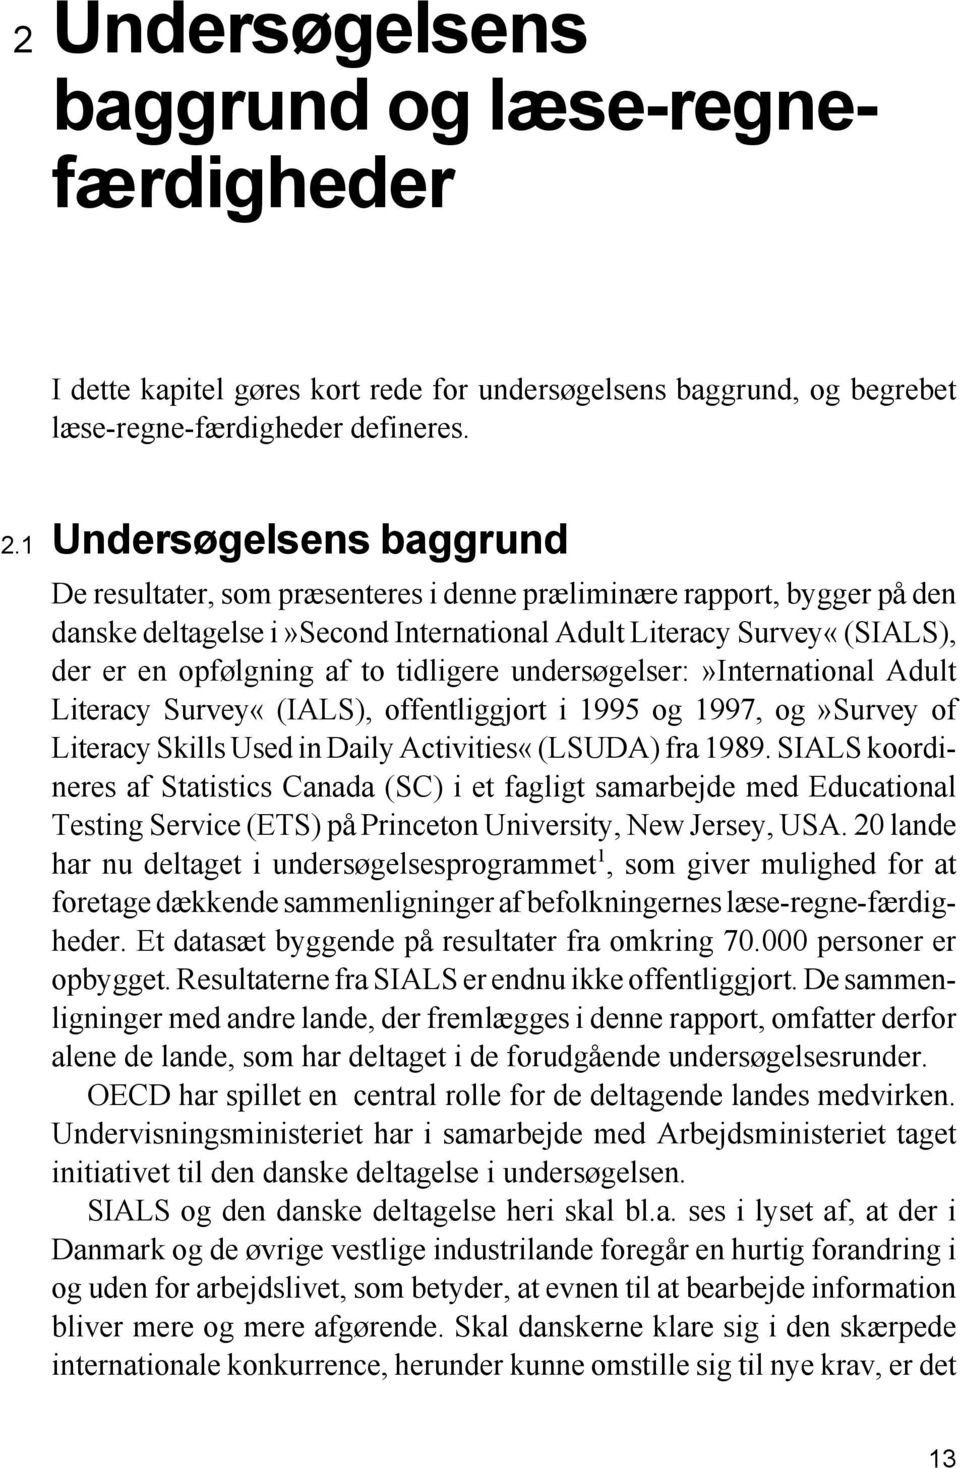 tidligere undersøgelser:»international Adult Literacy Survey«(IALS), offentliggjort i 1995 og 1997, og»survey of Literacy Skills Used in Daily Activities«(LSUDA) fra 1989.